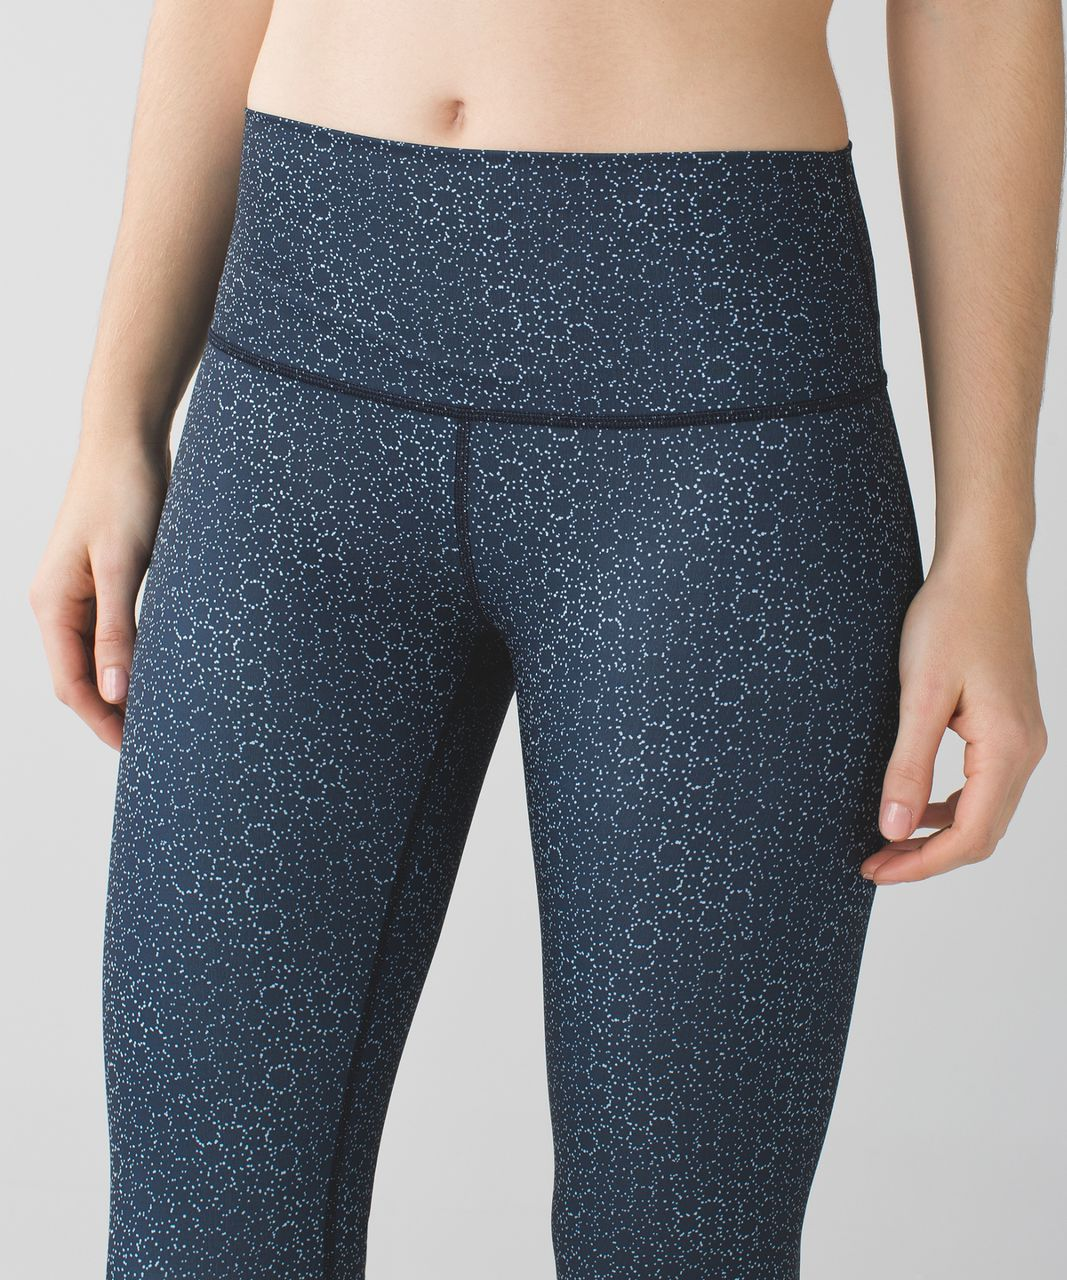 Lululemon High Times Pant *Full-On Luxtreme - Star Pixel Aquamarine Naval Blue